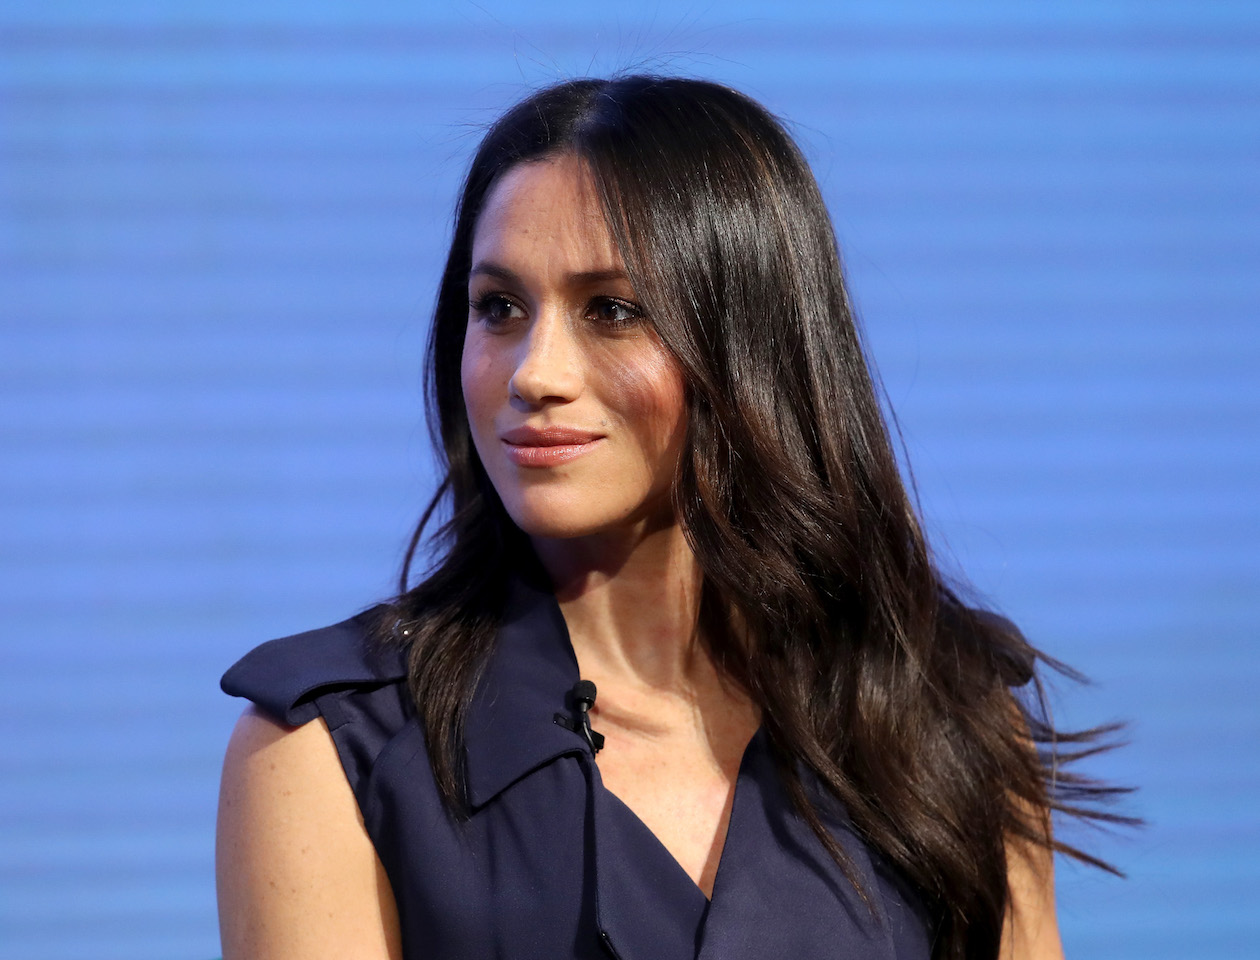 Did Meghan Markle Anger The Royals By Speaking About #MeToo And #TimesUp?